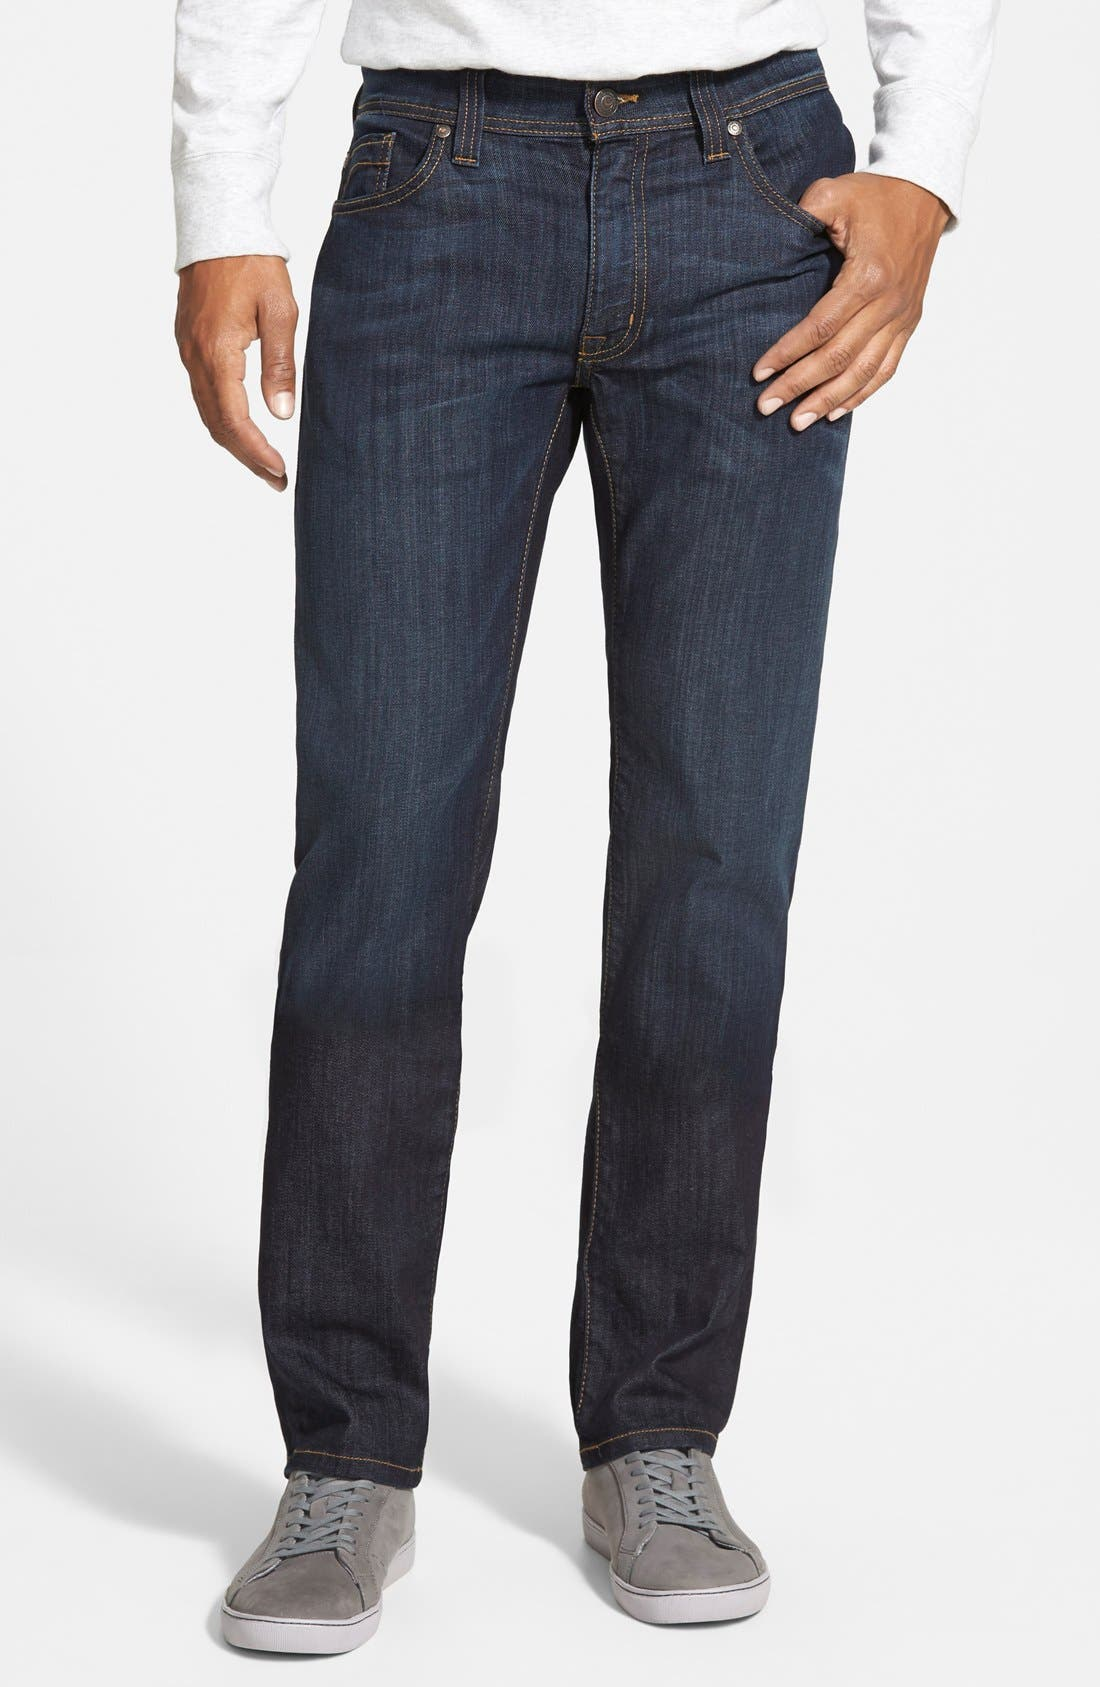 Fidelity Denim Jimmy Slim Straight Leg Jeans (Clampdown Dark)